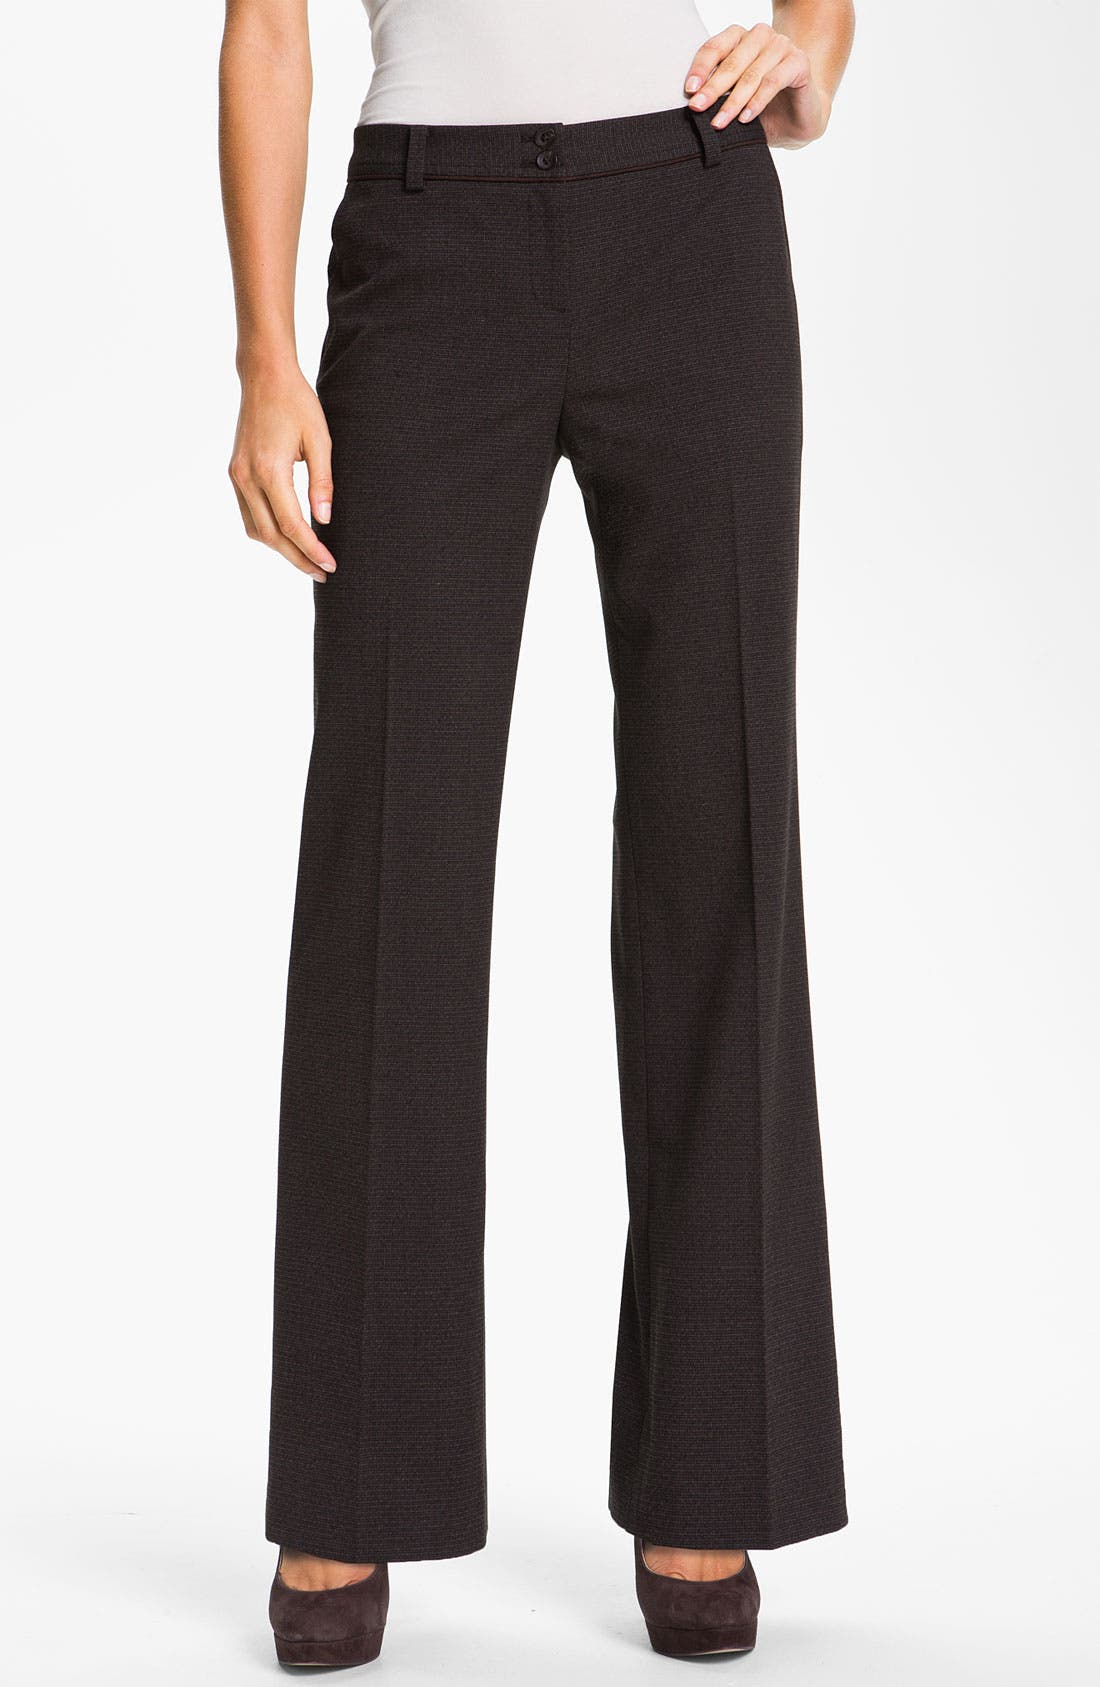 Alternate Image 1 Selected - Halogen® 'Taylor' Cross Weave Curvy Fit Pants